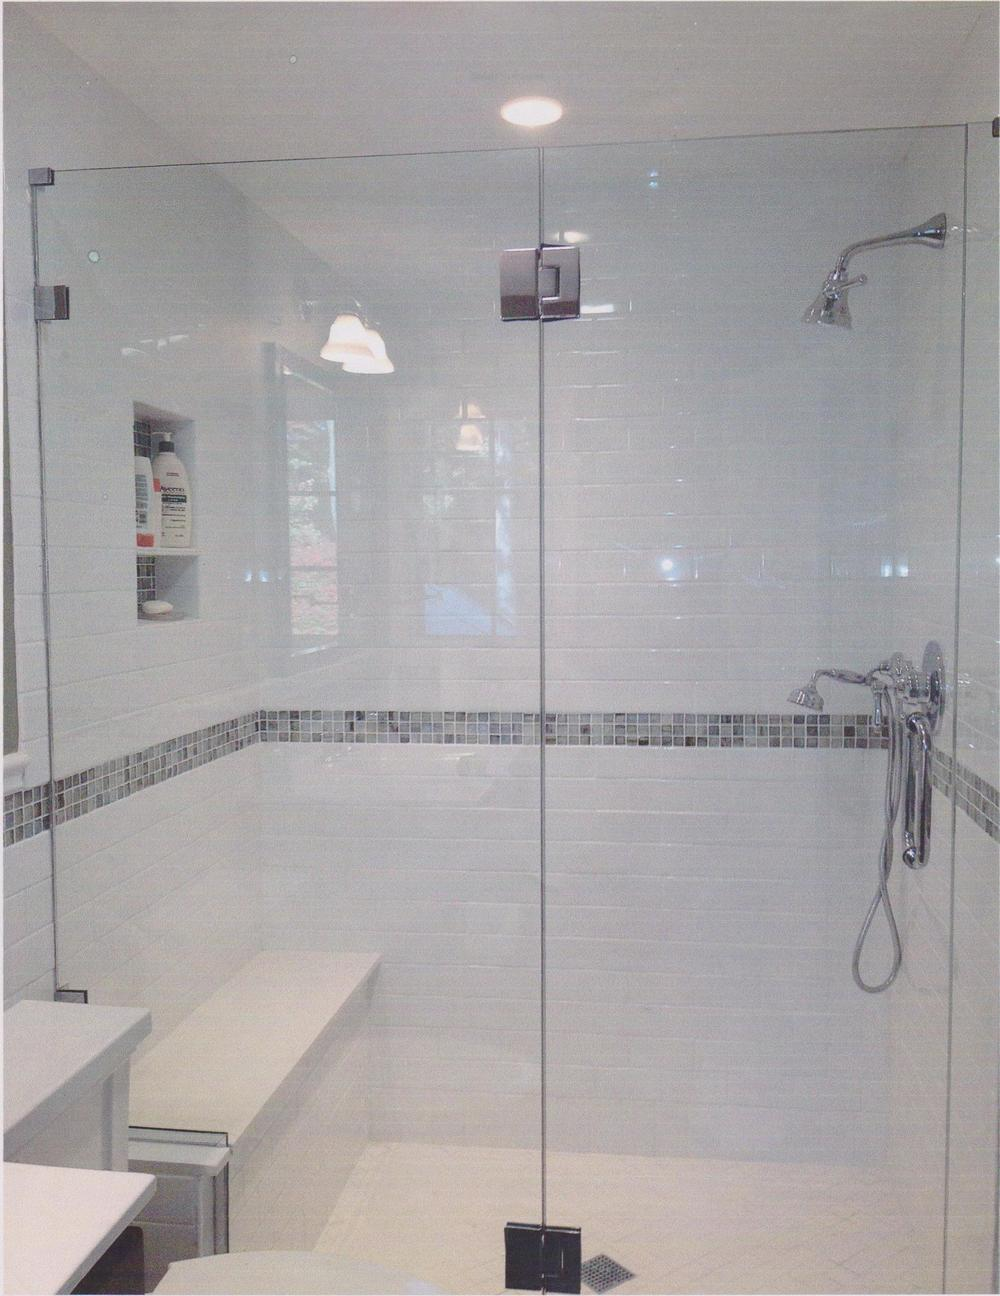 When it comes to designing, replacing, and installing glass shower doors, Stamford Shower Glass & Mirror has you covered. Click   here   to learn how we can convert your bathroom into a fresh and contemporary space.